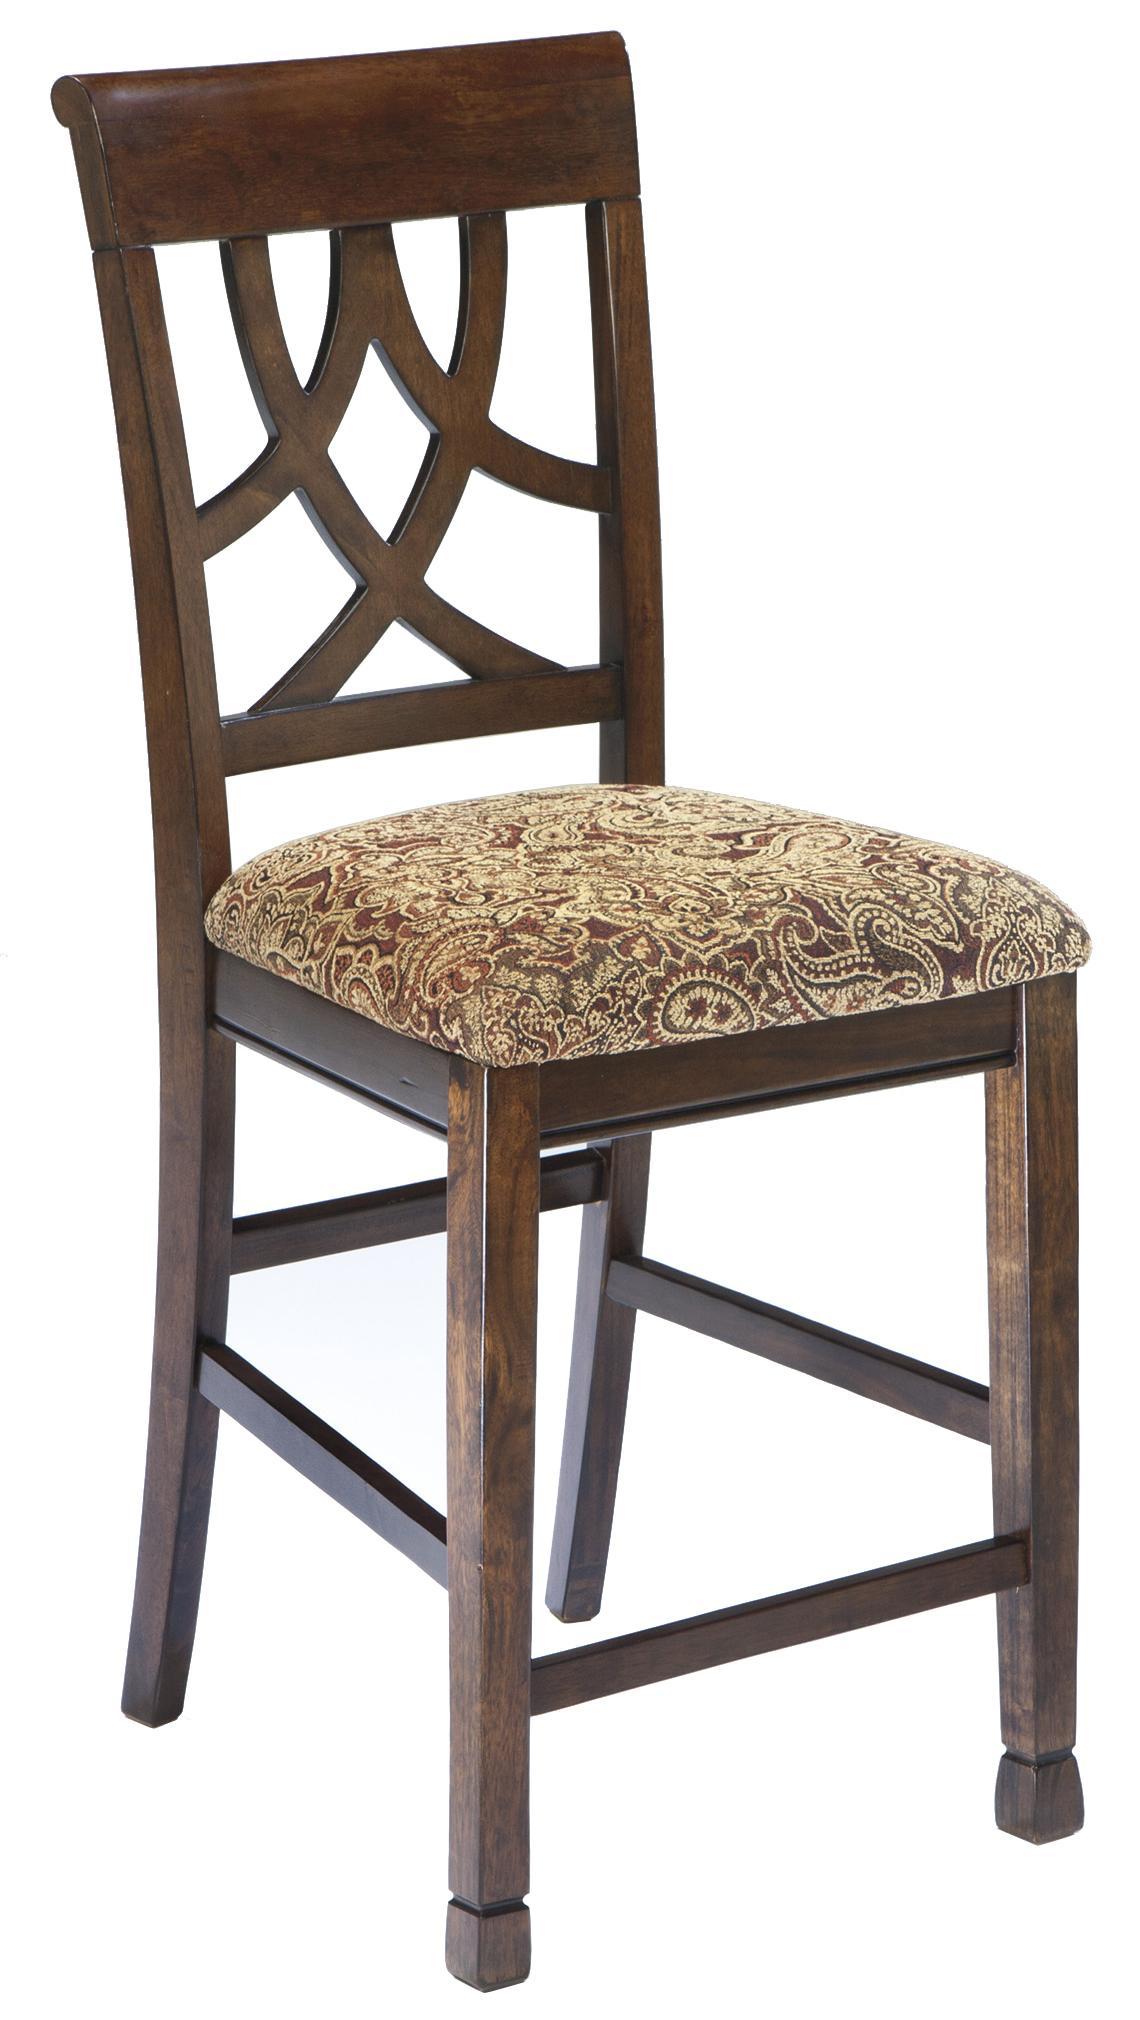 Signature Design by Ashley Leahlyn Upholstered Barstool - Item Number: D436-124